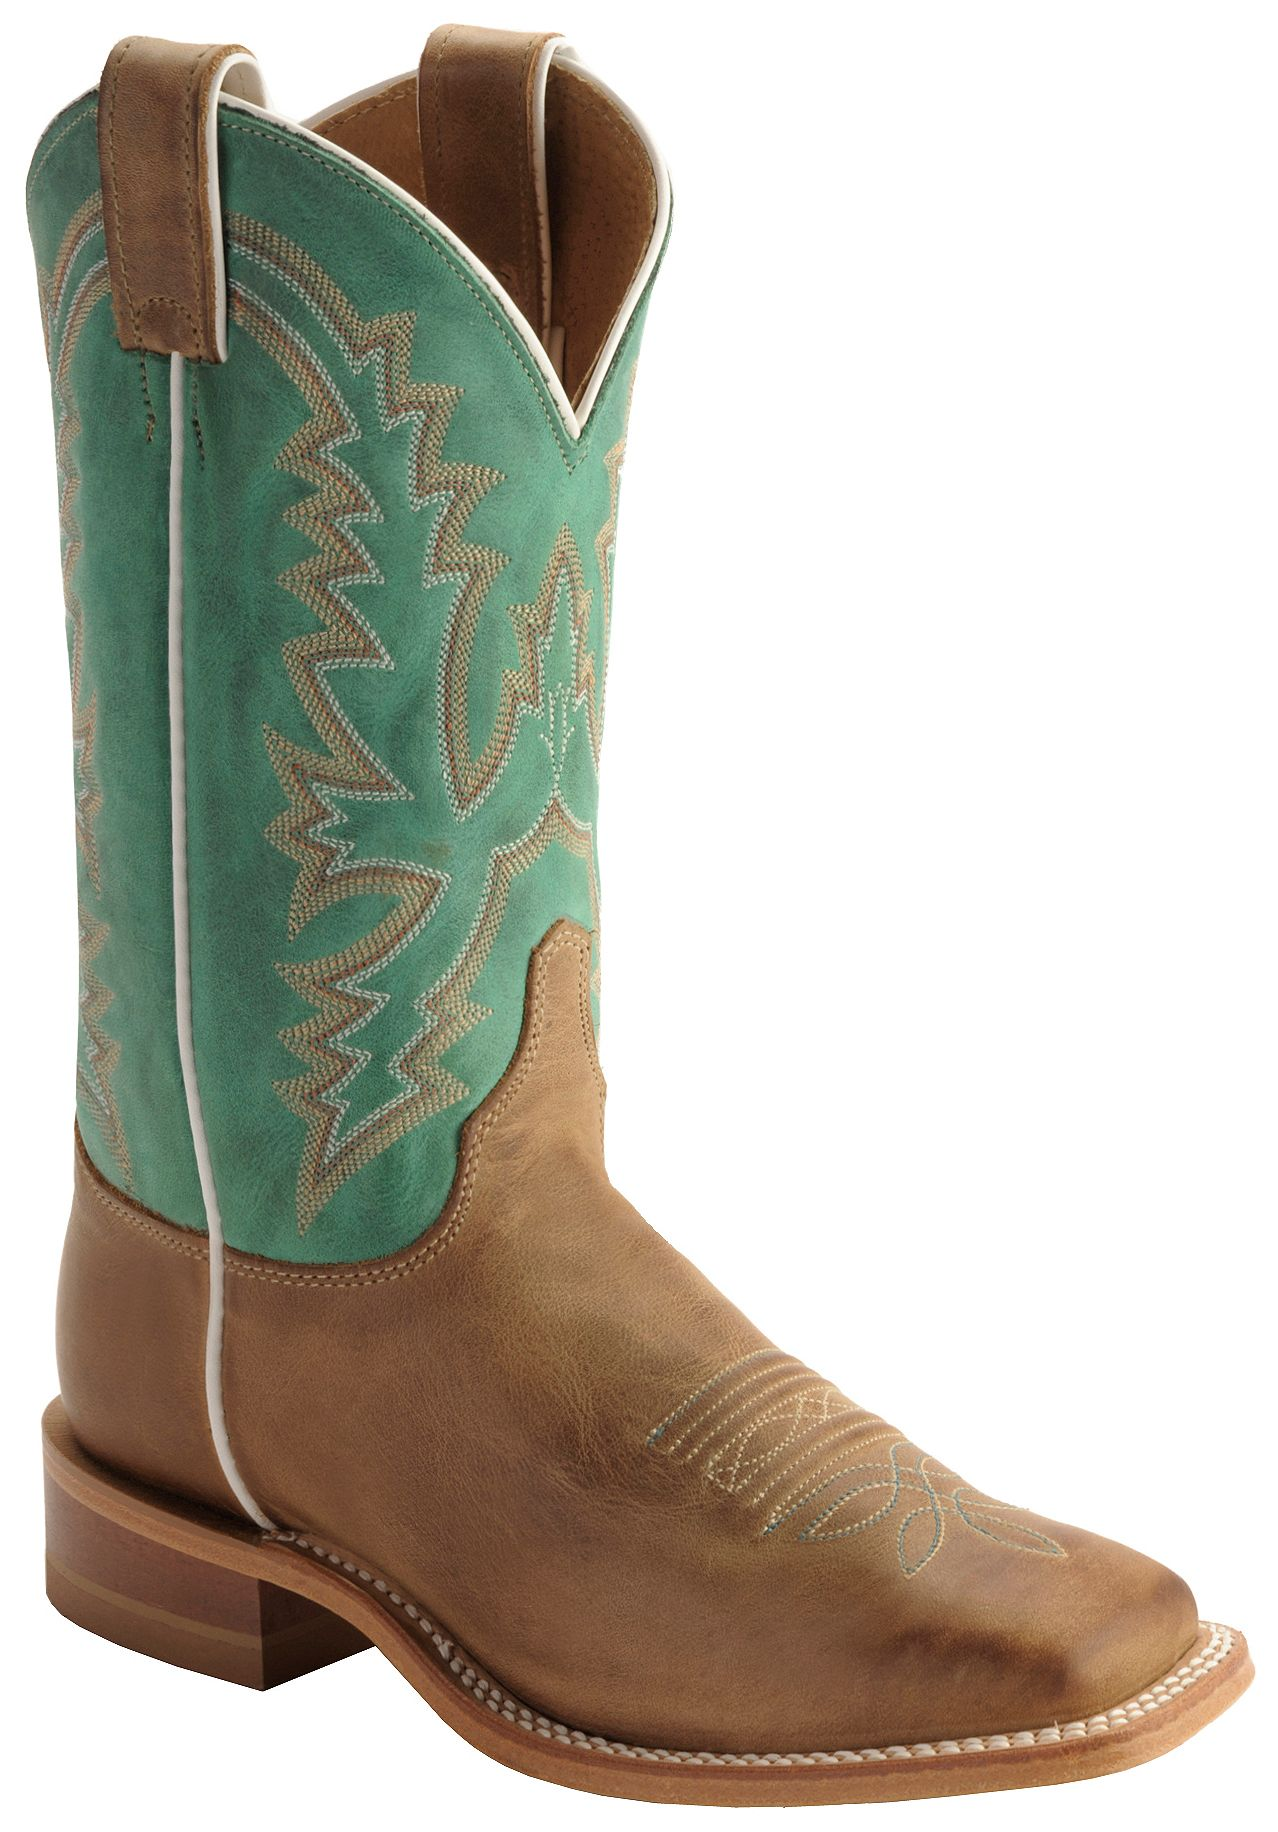 justin  bent rail  justin 's kenedy tan cowgirl bottes bouts carrés 16489c